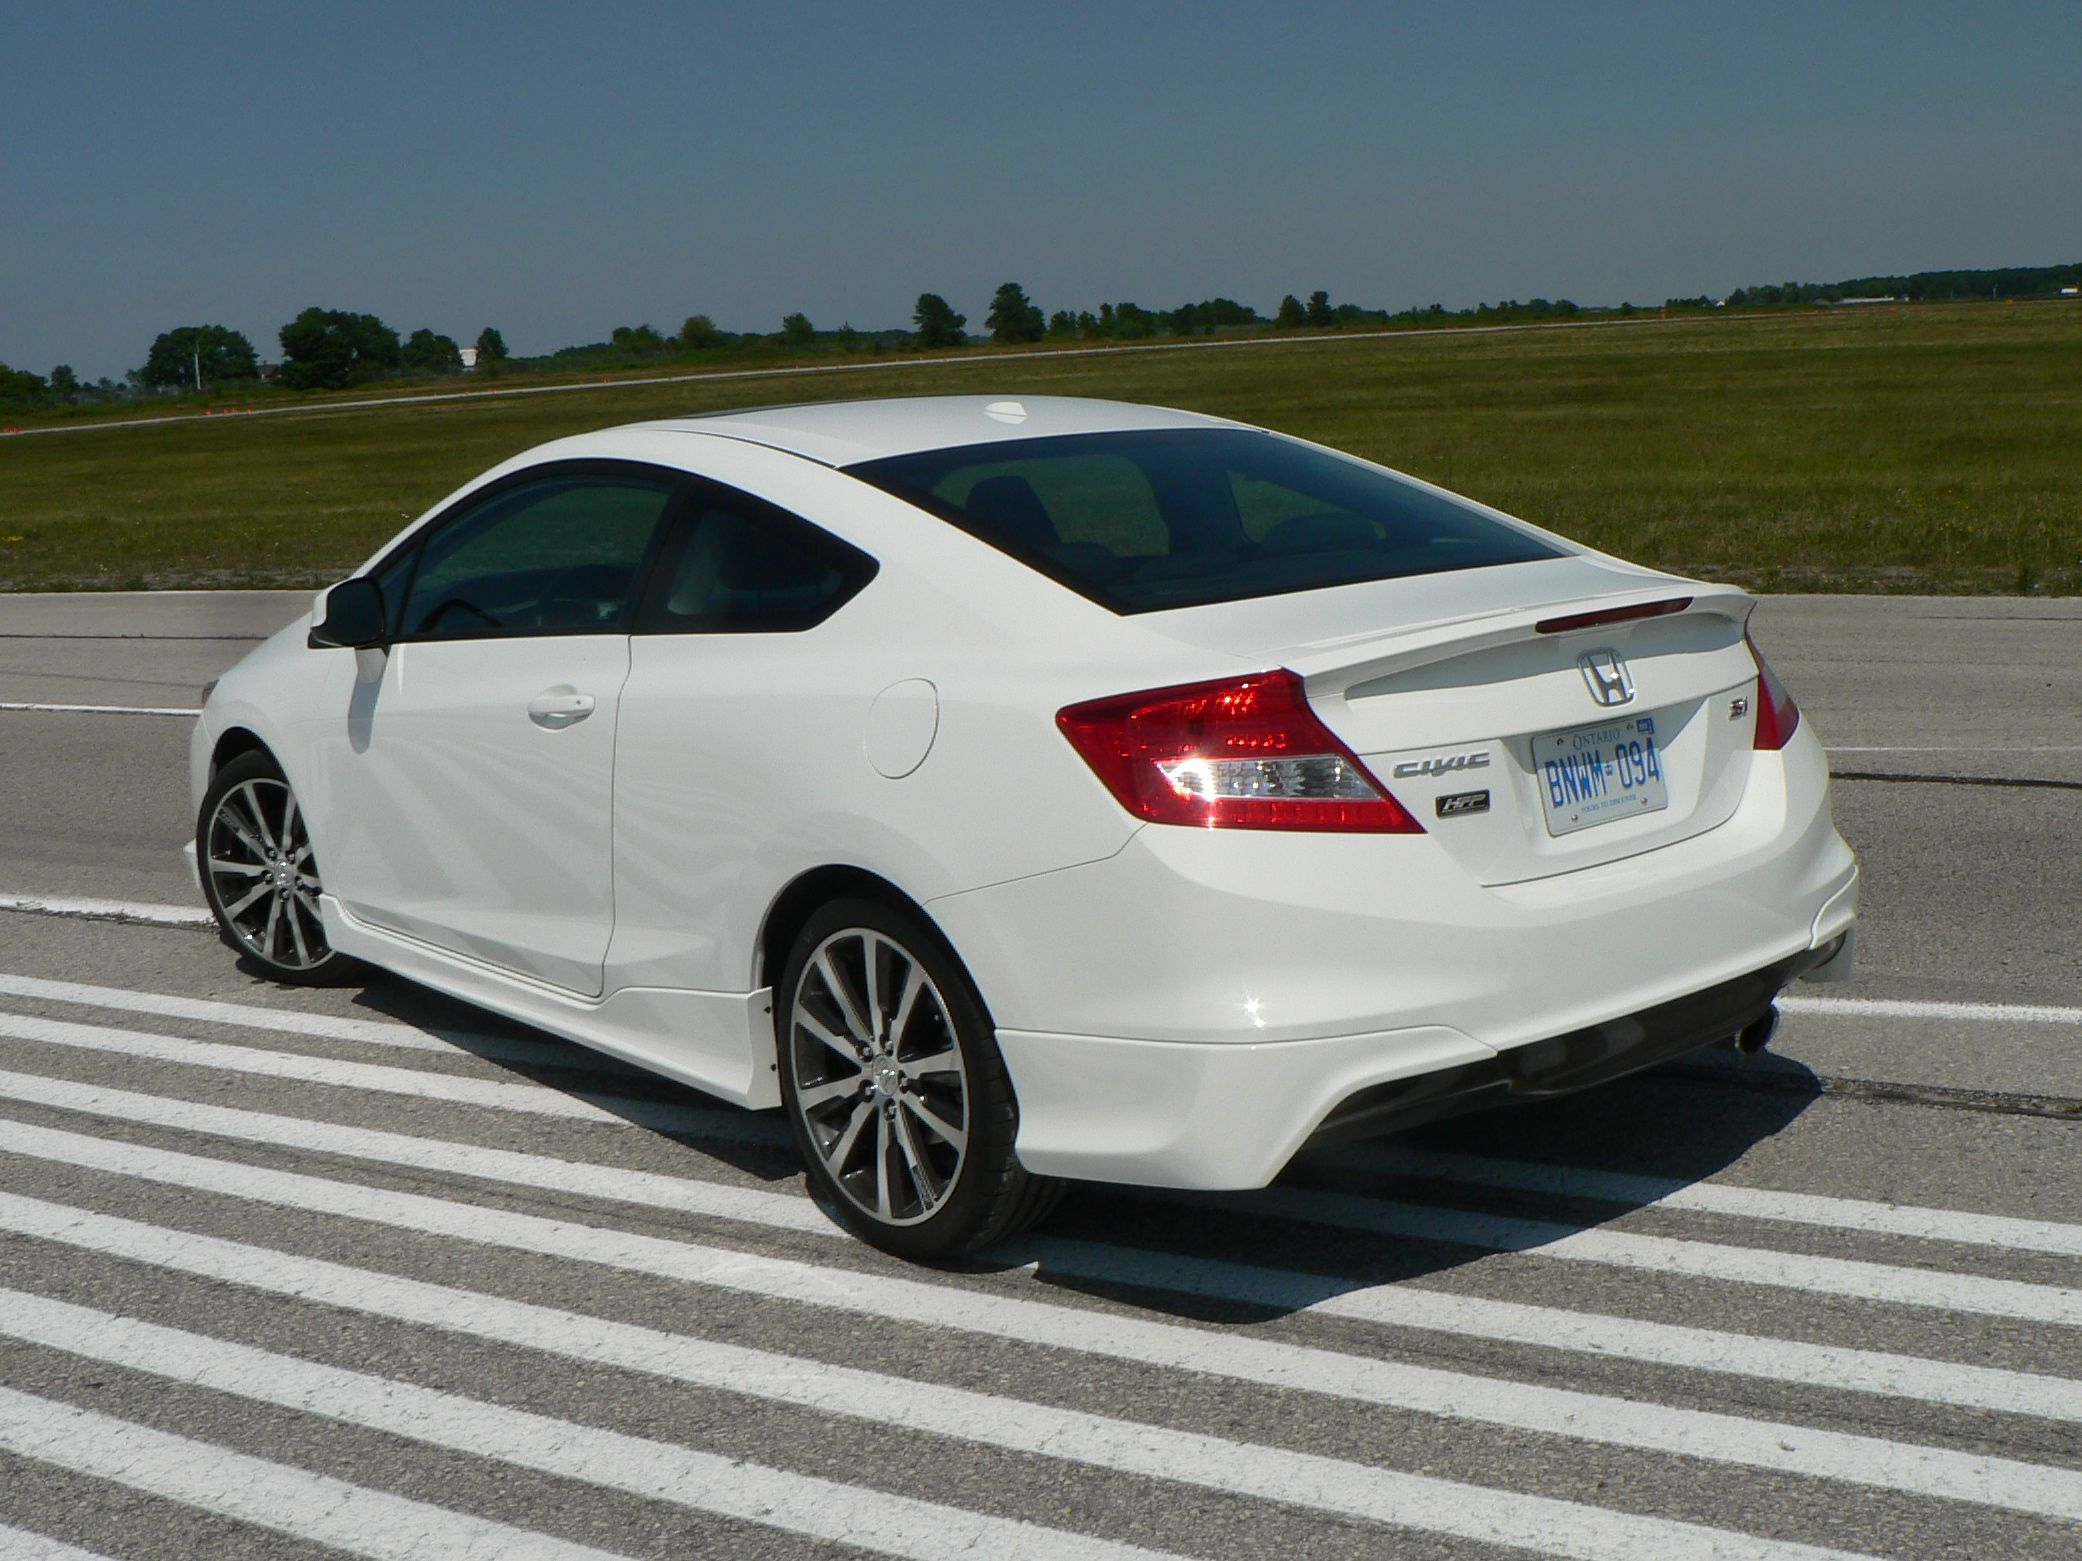 2013 honda civic si coupe car reviews and pictures hd car spot pinterest honda civic si. Black Bedroom Furniture Sets. Home Design Ideas